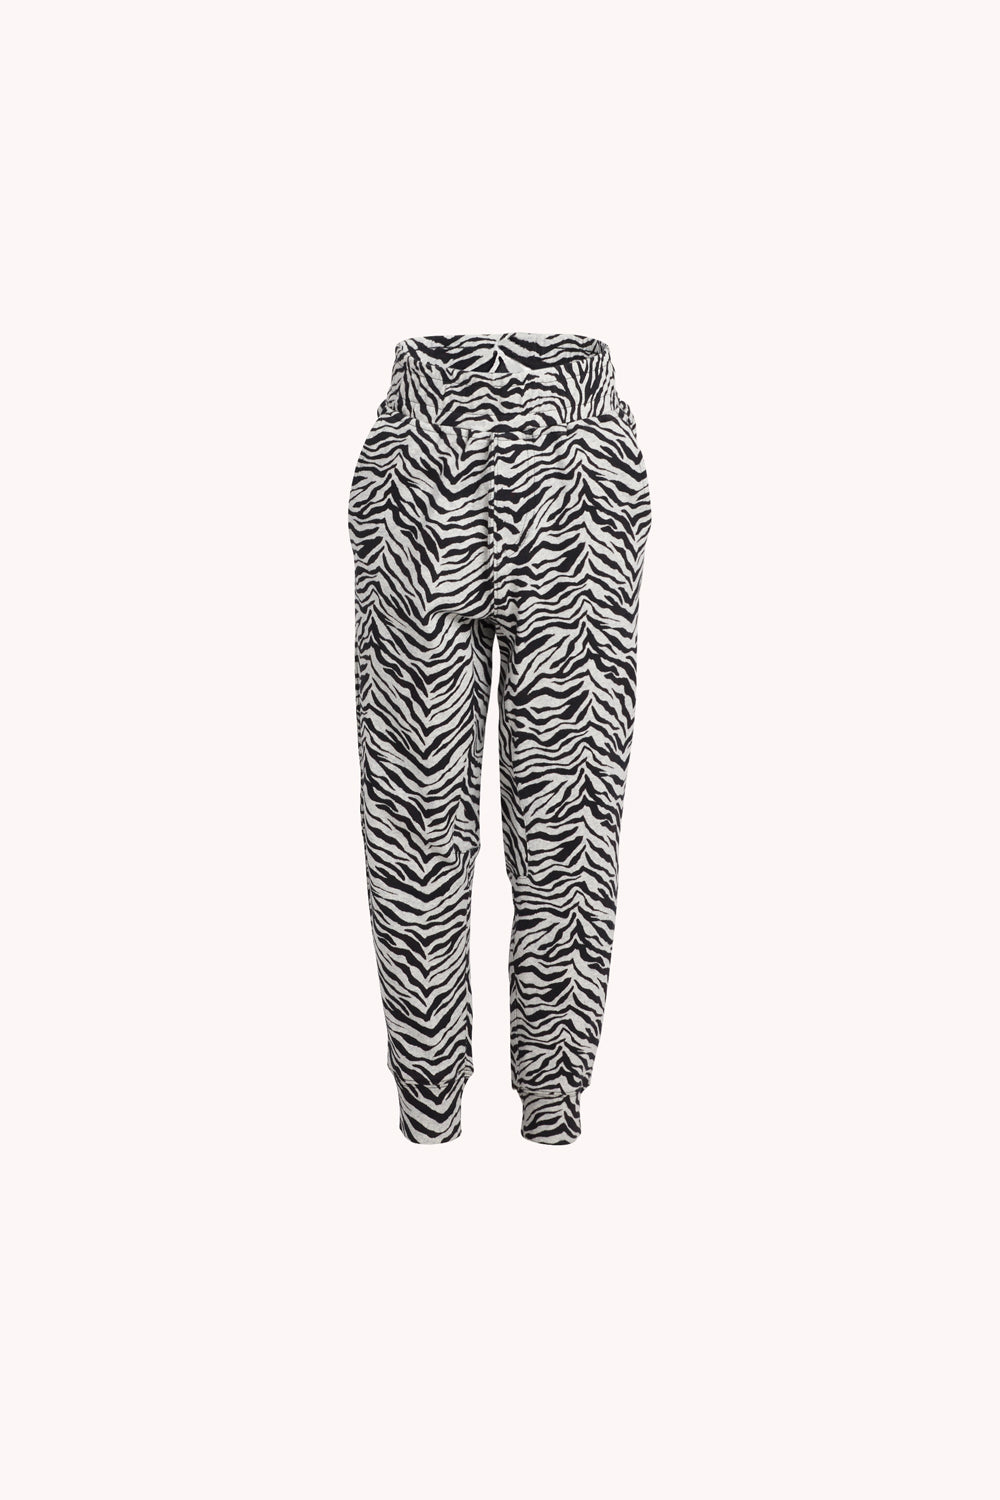 Jogger | Heather Gray Zebra